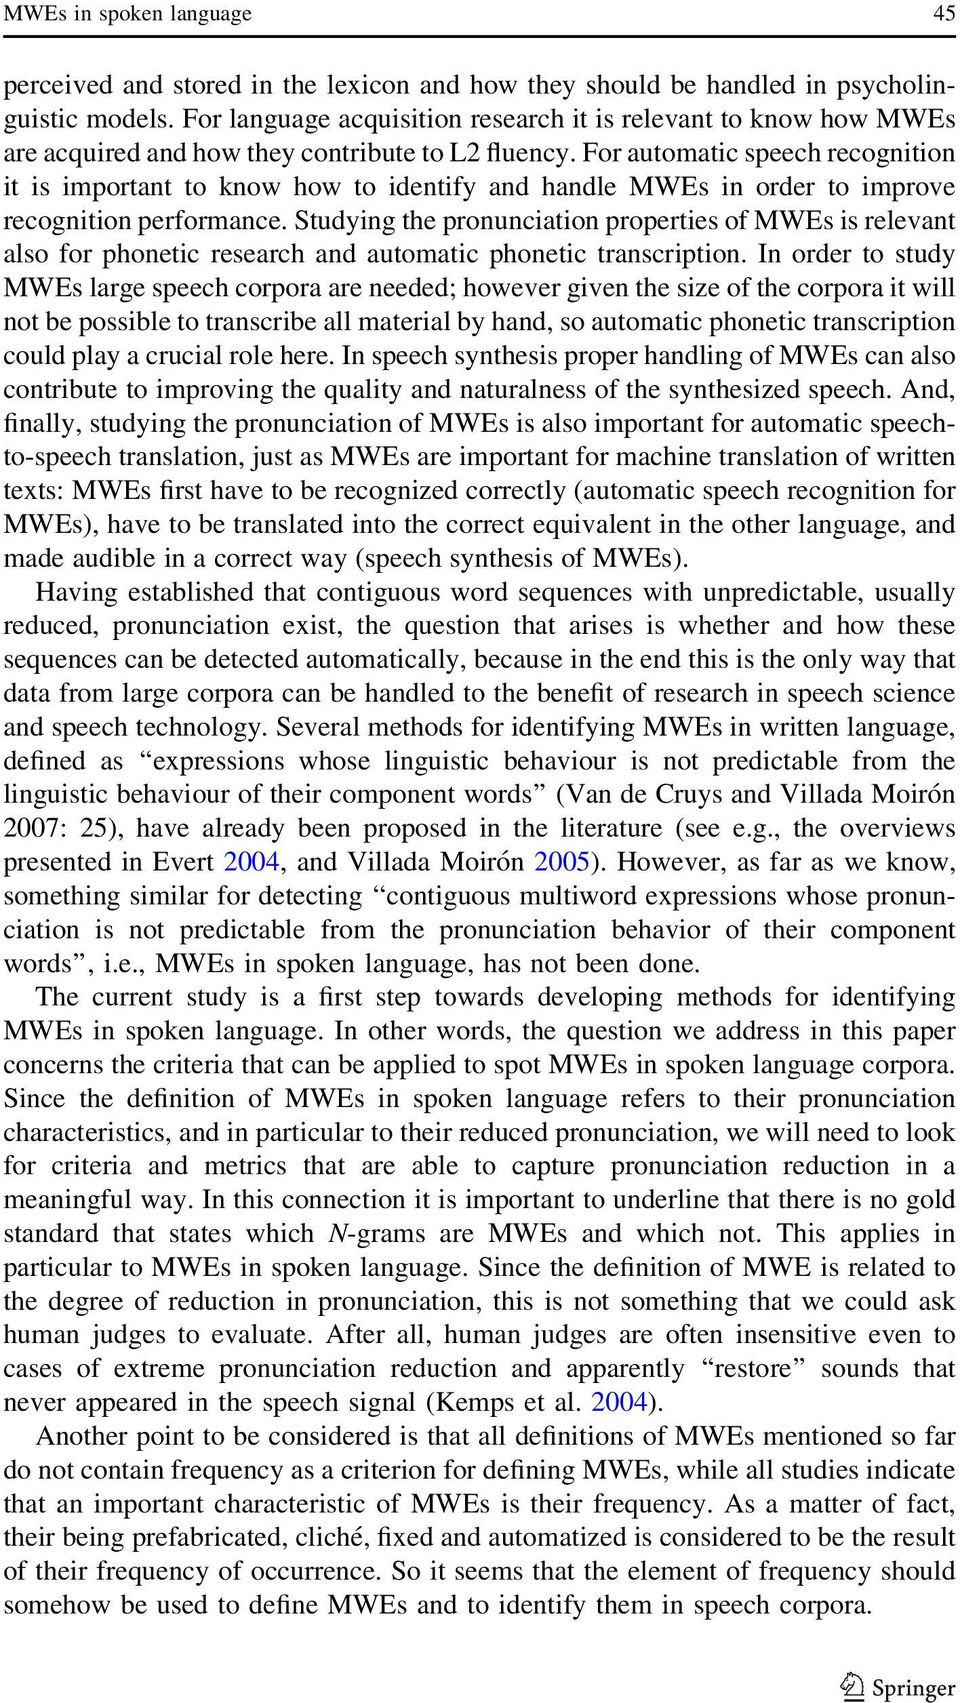 For automatic speech recognition it is important to know how to identify and handle MWEs in order to improve recognition performance.